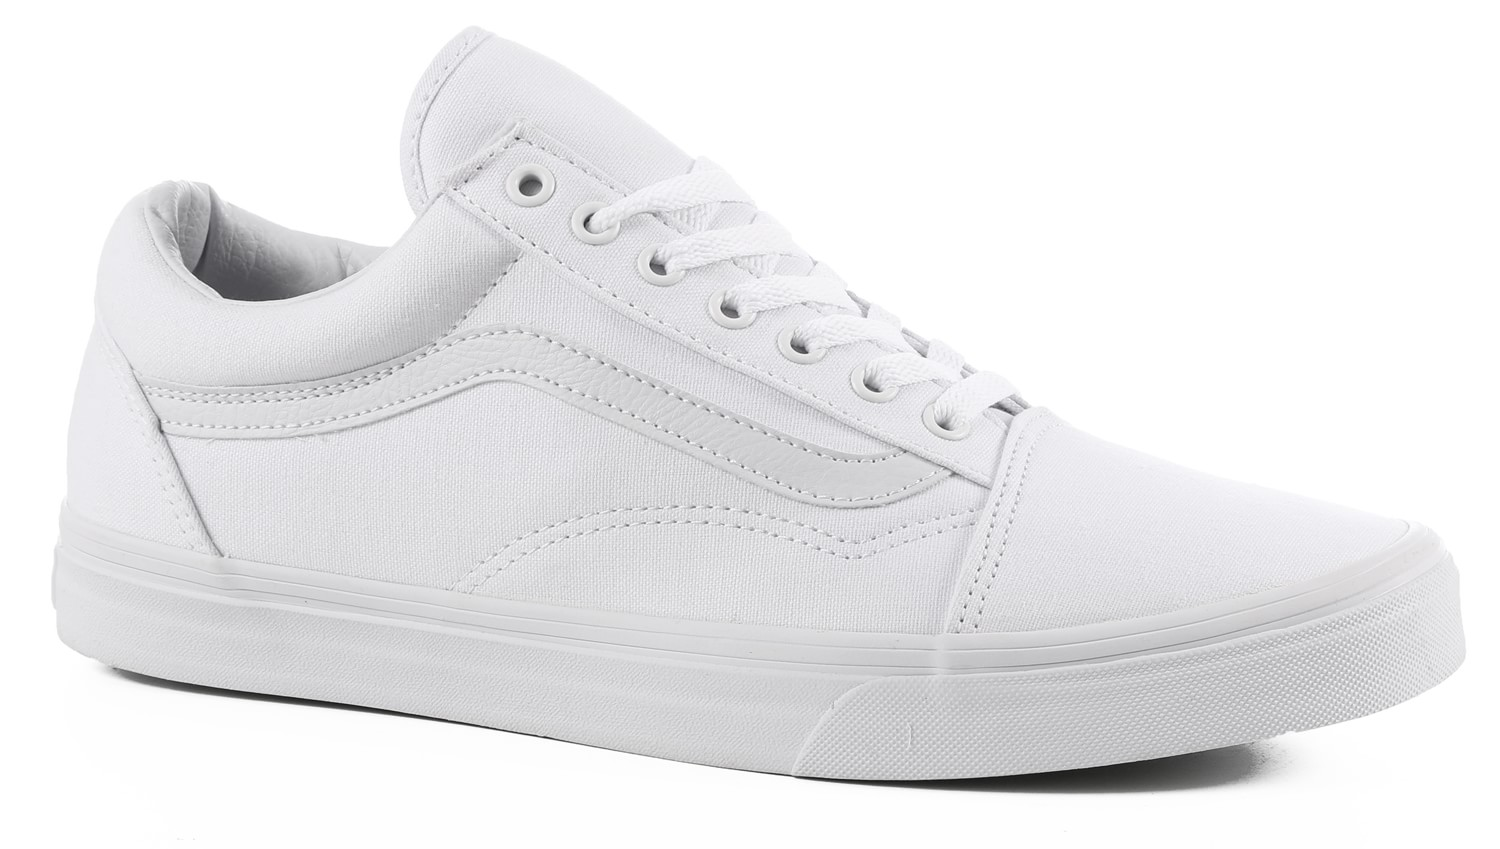 vans old skool skate shoes true white free shipping. Black Bedroom Furniture Sets. Home Design Ideas